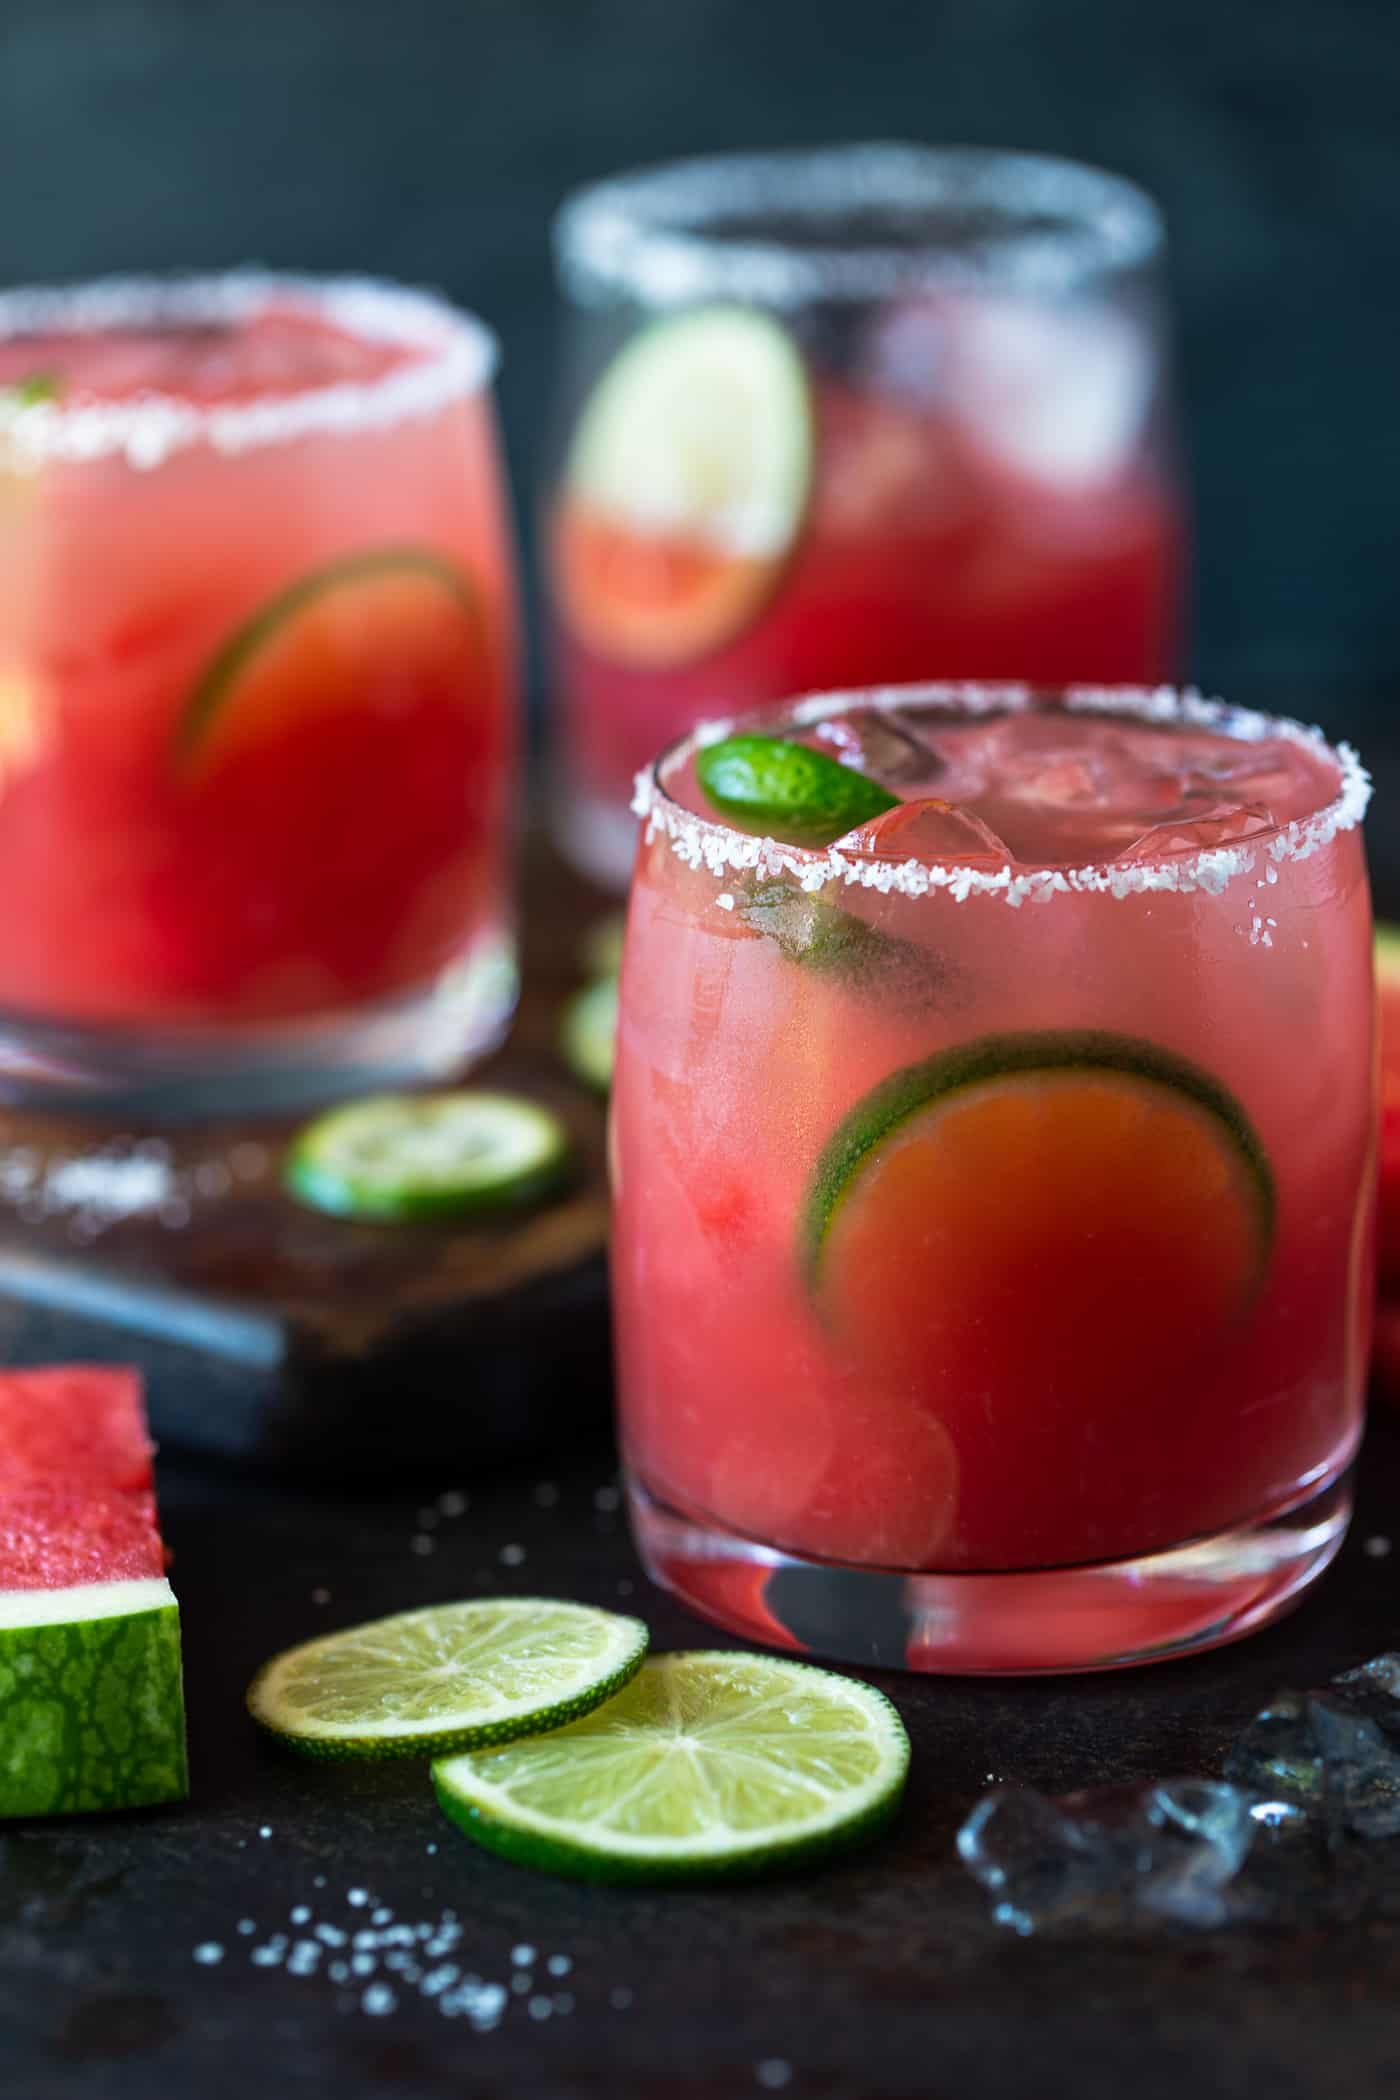 Lowball glasses rimmed with salt and filled with margaritas. Garnished with lime wheels and watermelon chunks.